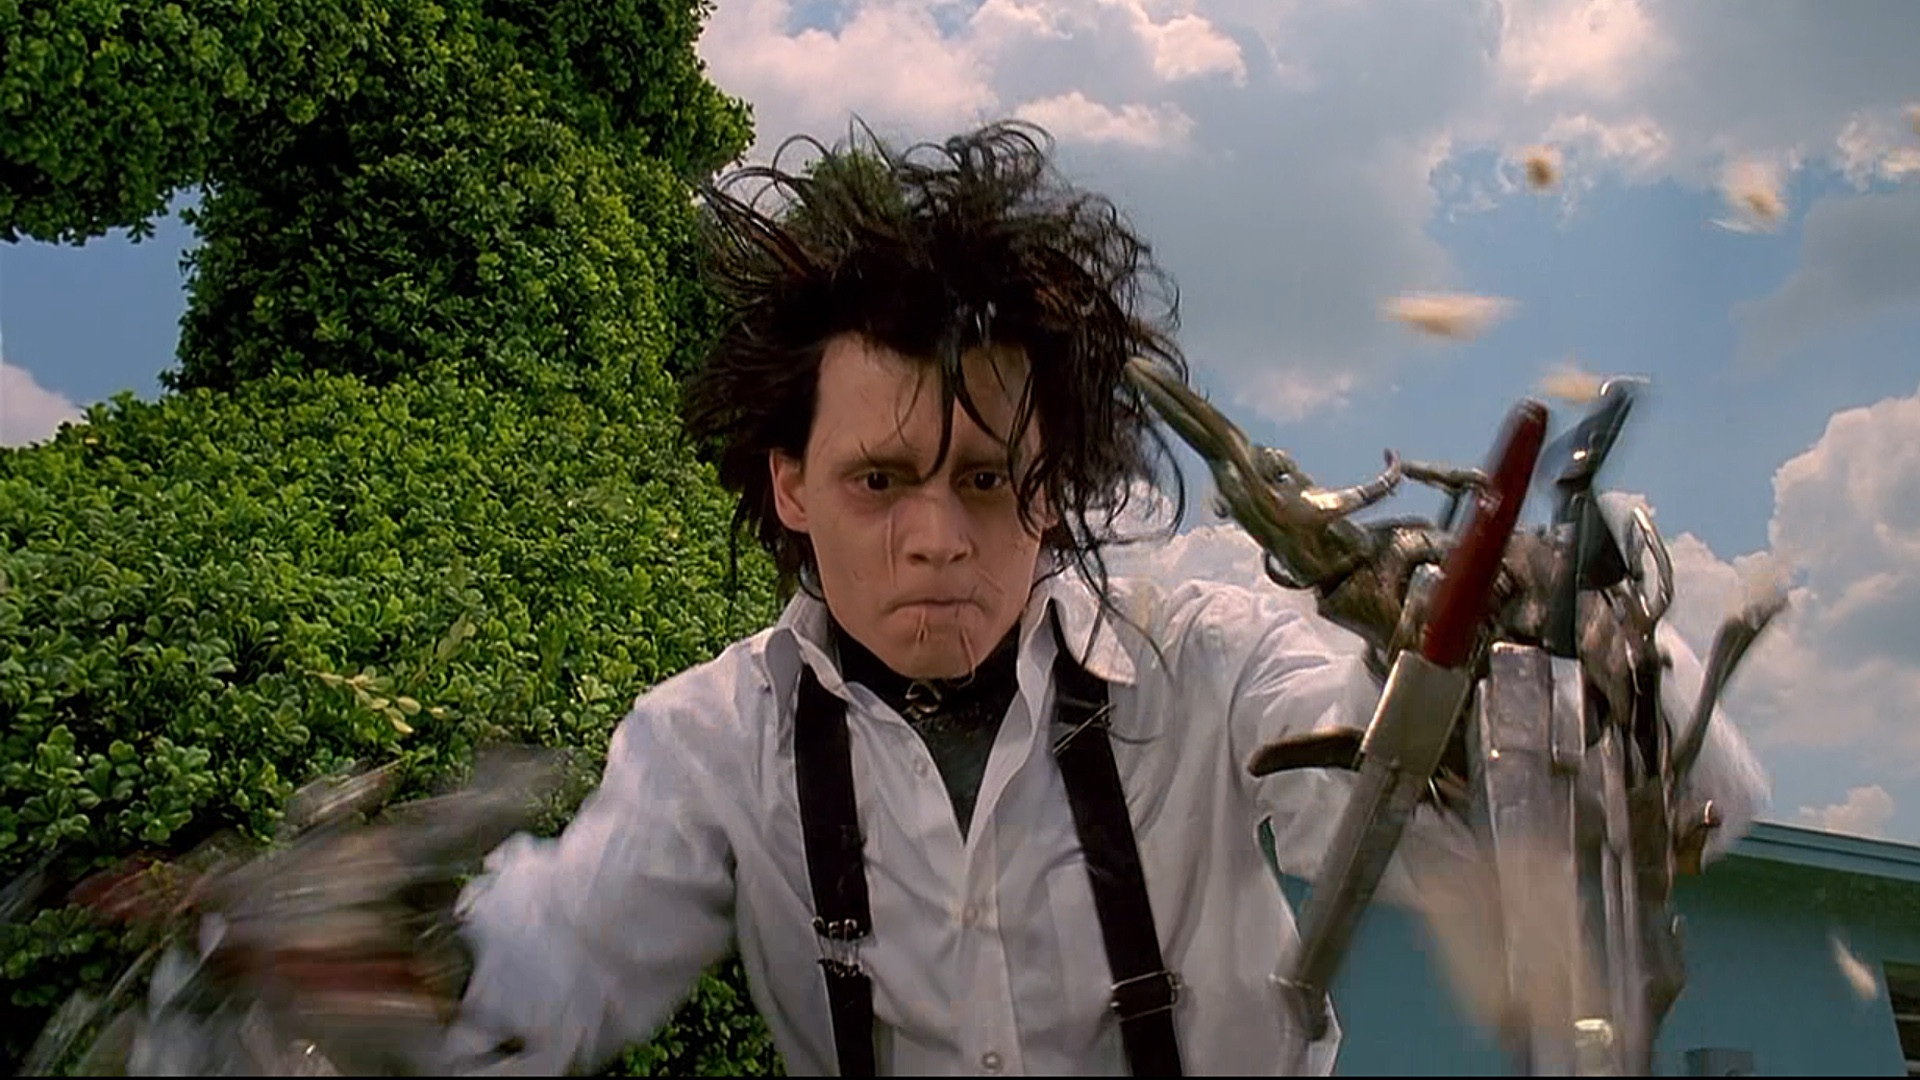 edward scissorhands film 1-16 of 285 results for edward scissorhands movie click try in your search results to watch thousands of movies and tv shows at no additional cost with an amazon prime membership showing selected results.